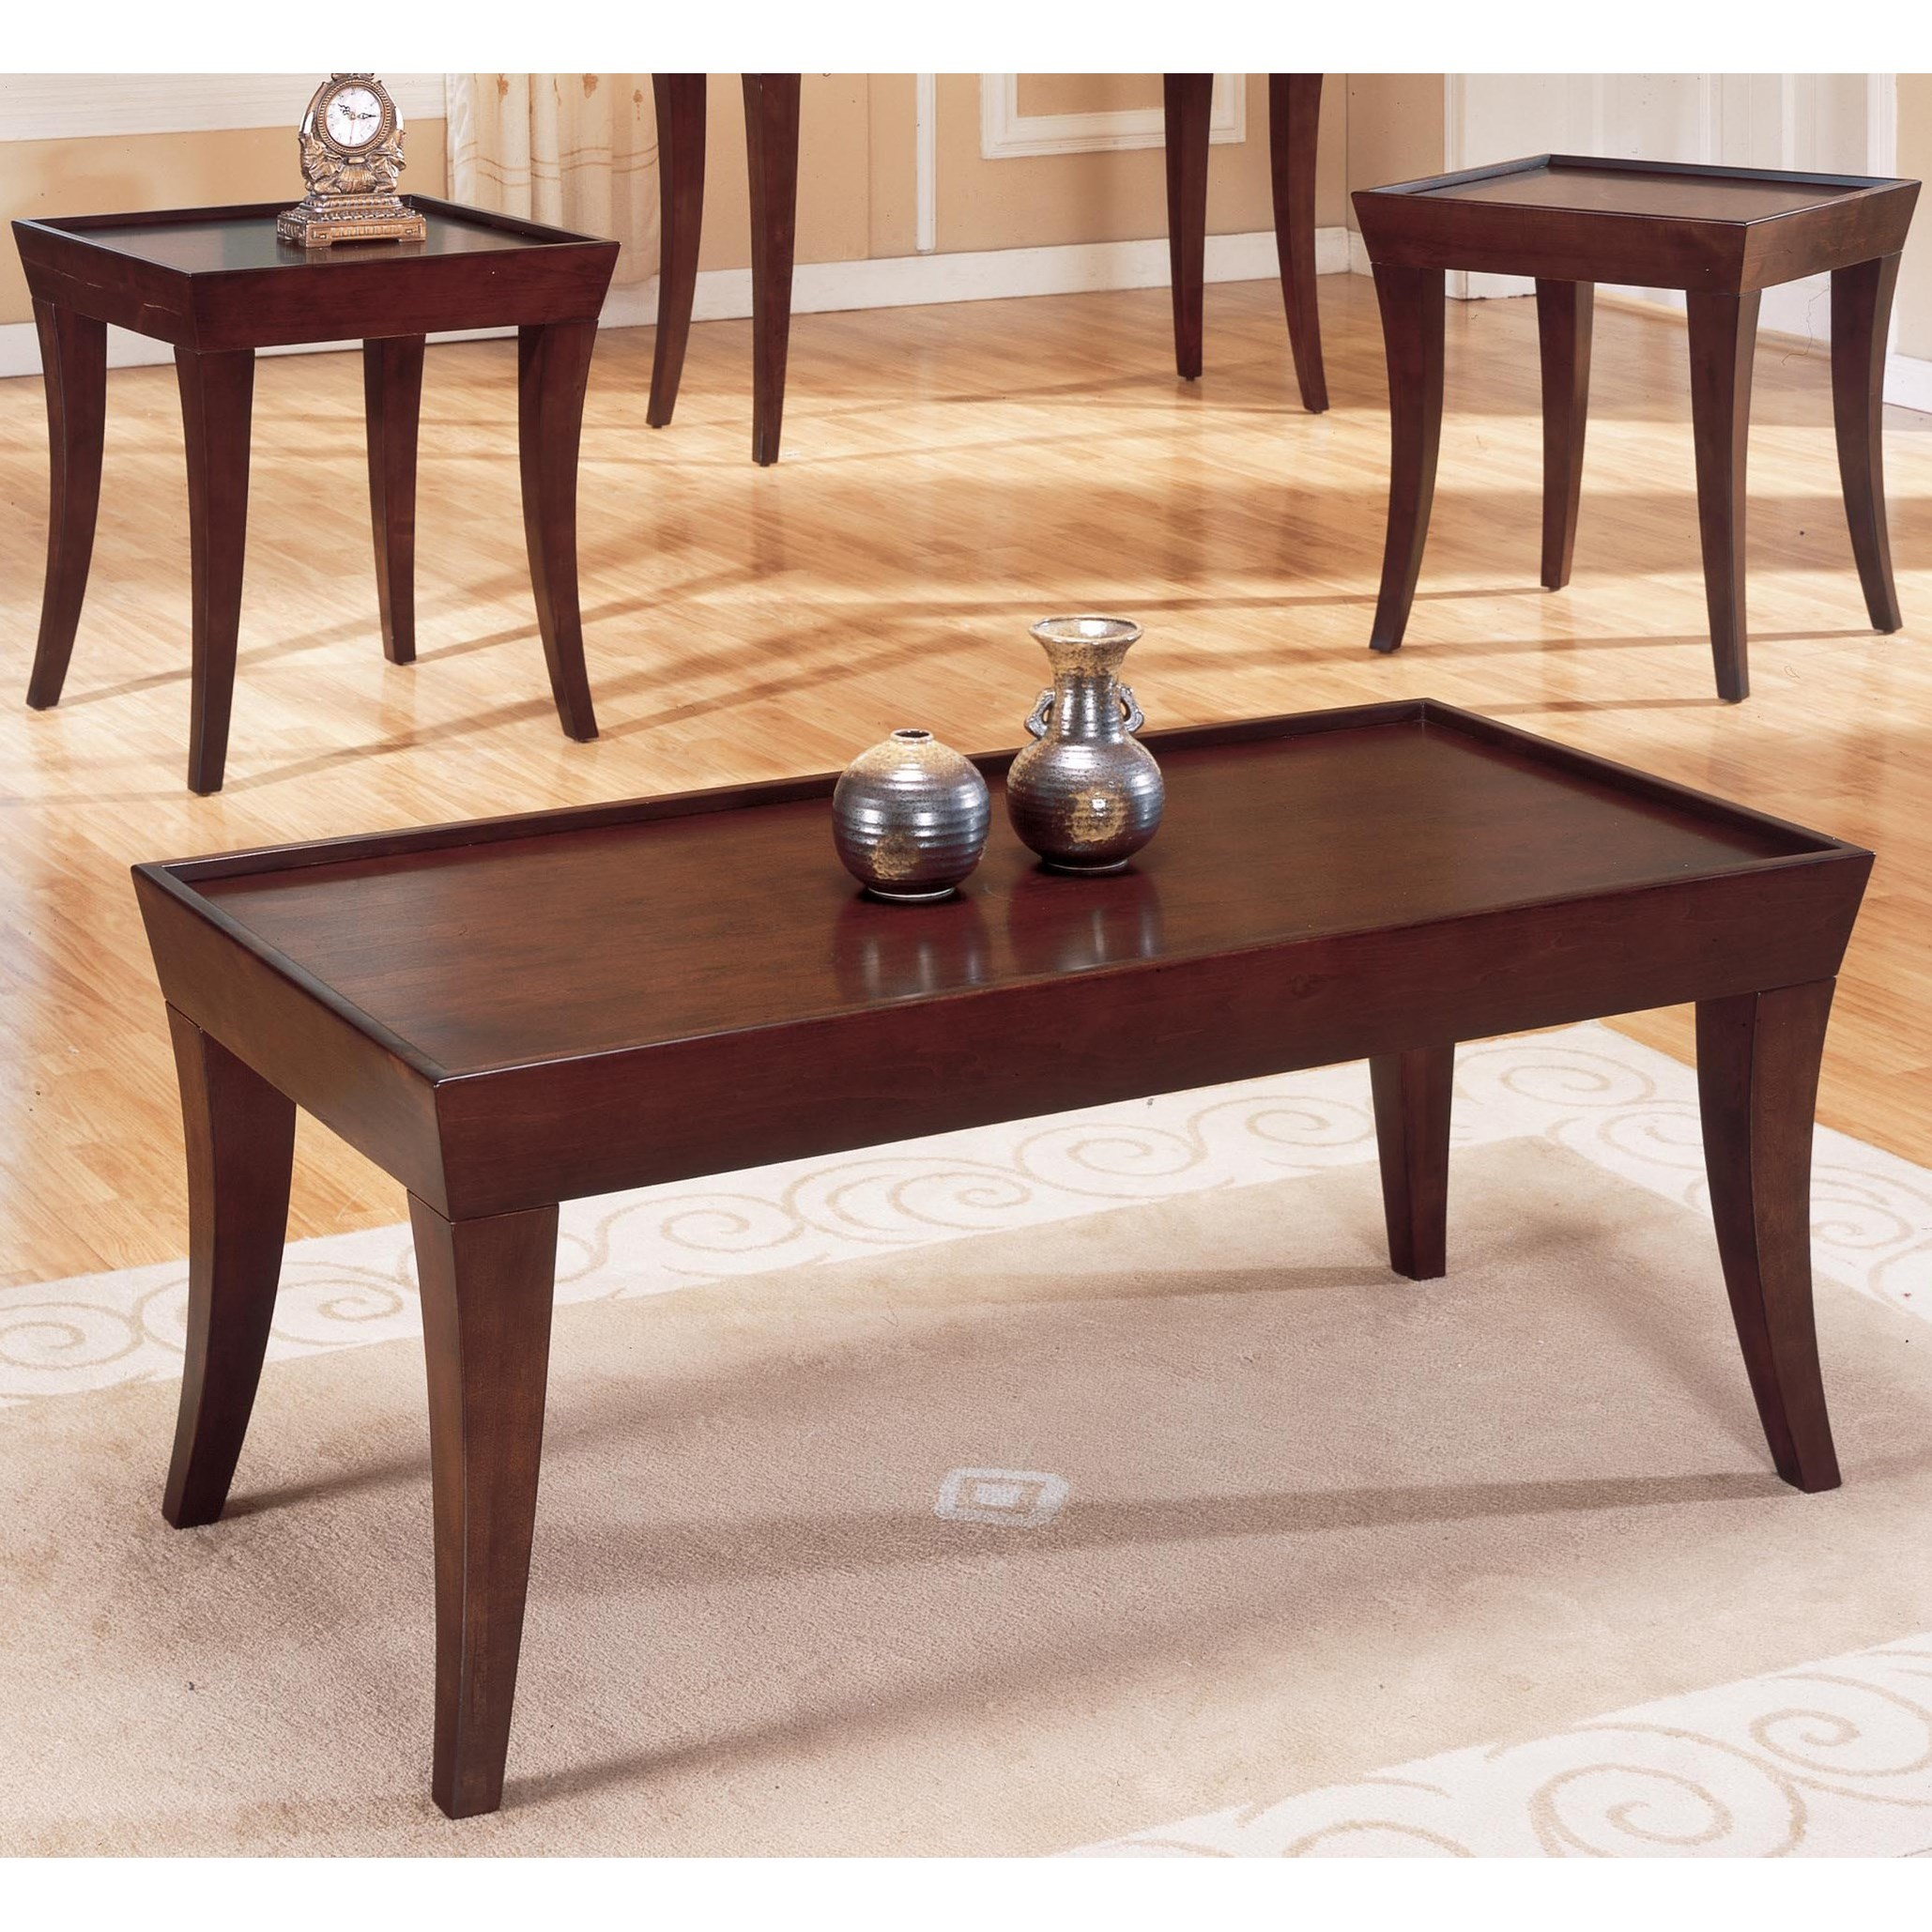 Zen Casual Occasional Table Group by Homelegance at Lindy's Furniture Company